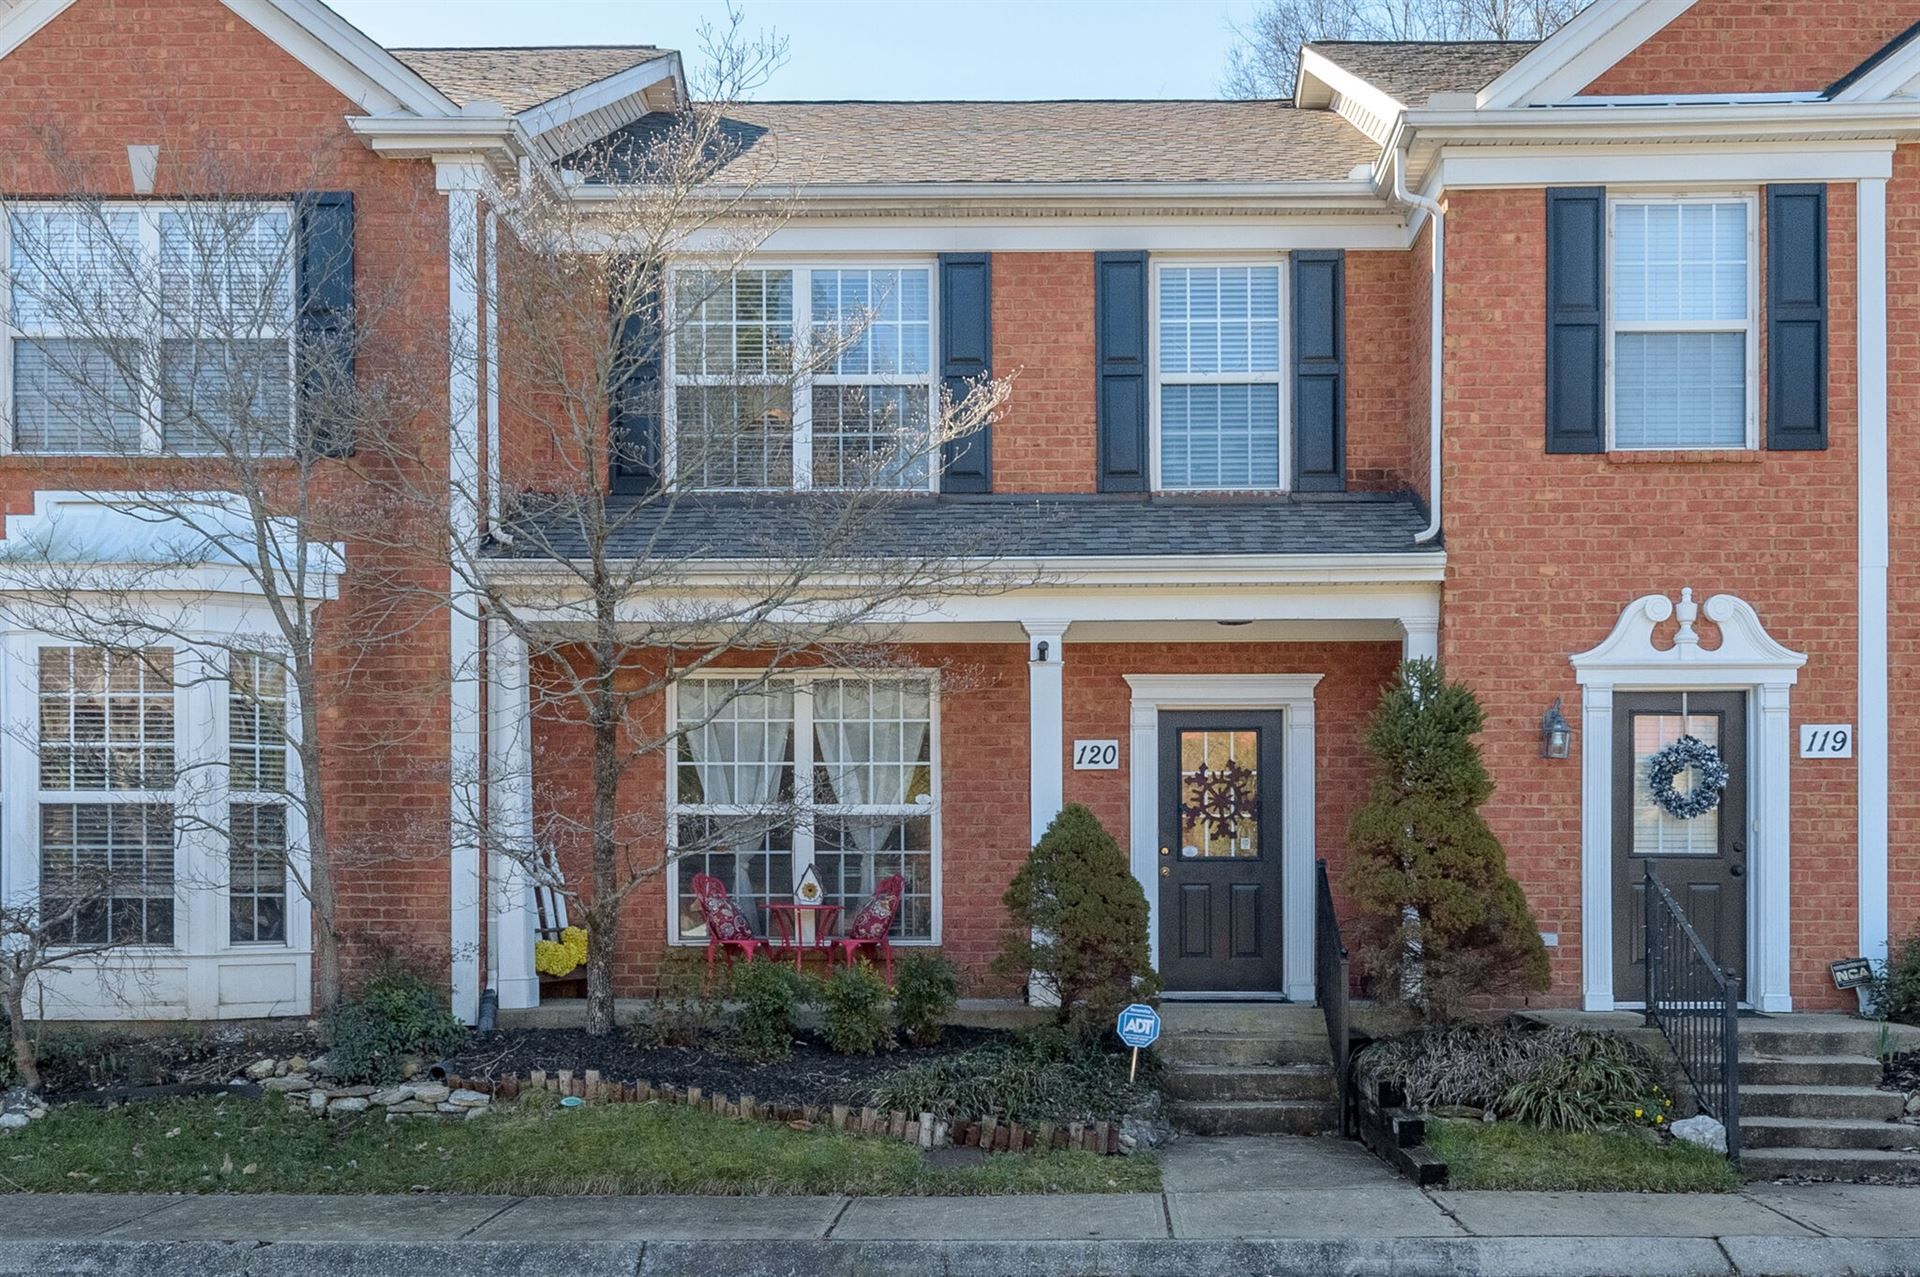 601 Old Hickory Blvd #120, Brentwood, TN 37027 - MLS#: 2233312